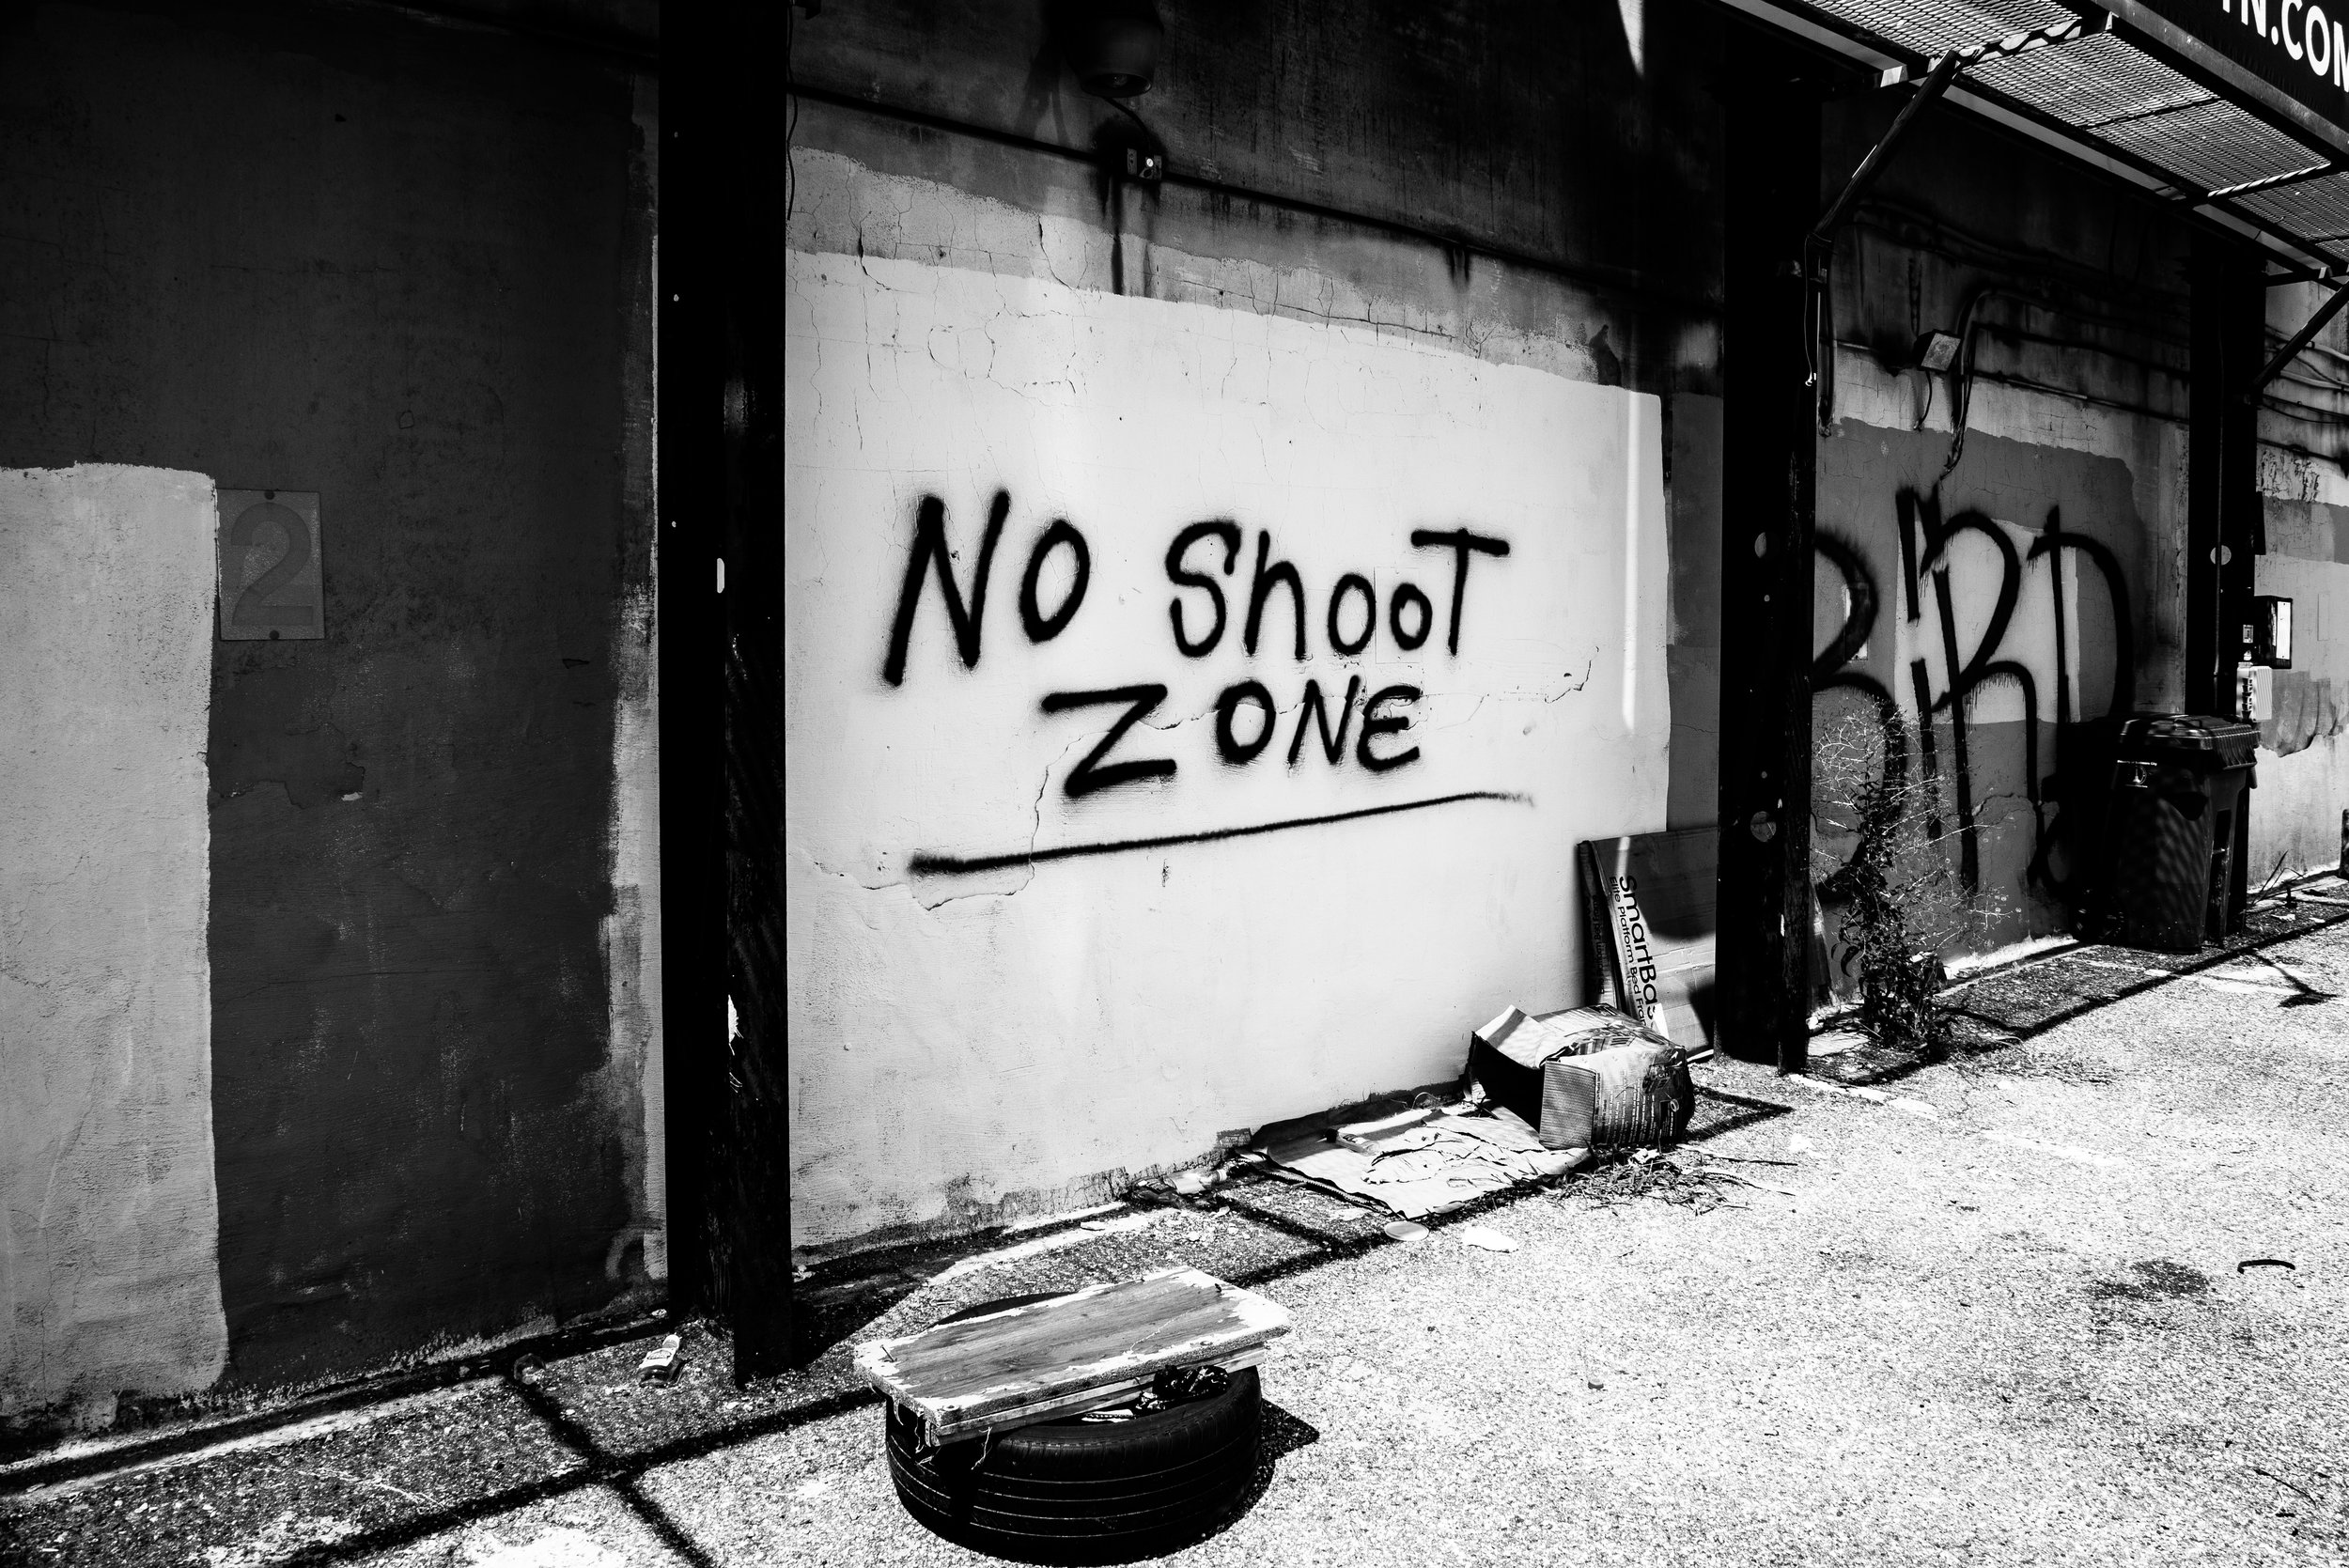 """The most liberating feeling as a business owner, creative, or freelancer is when you have the power and freedom to say no. Taking on the clients you want versus any client that shows up makes for a much more productive experience. If any of our clients cross into the """"No Shoot Zone"""" we feel comfortable walking away."""